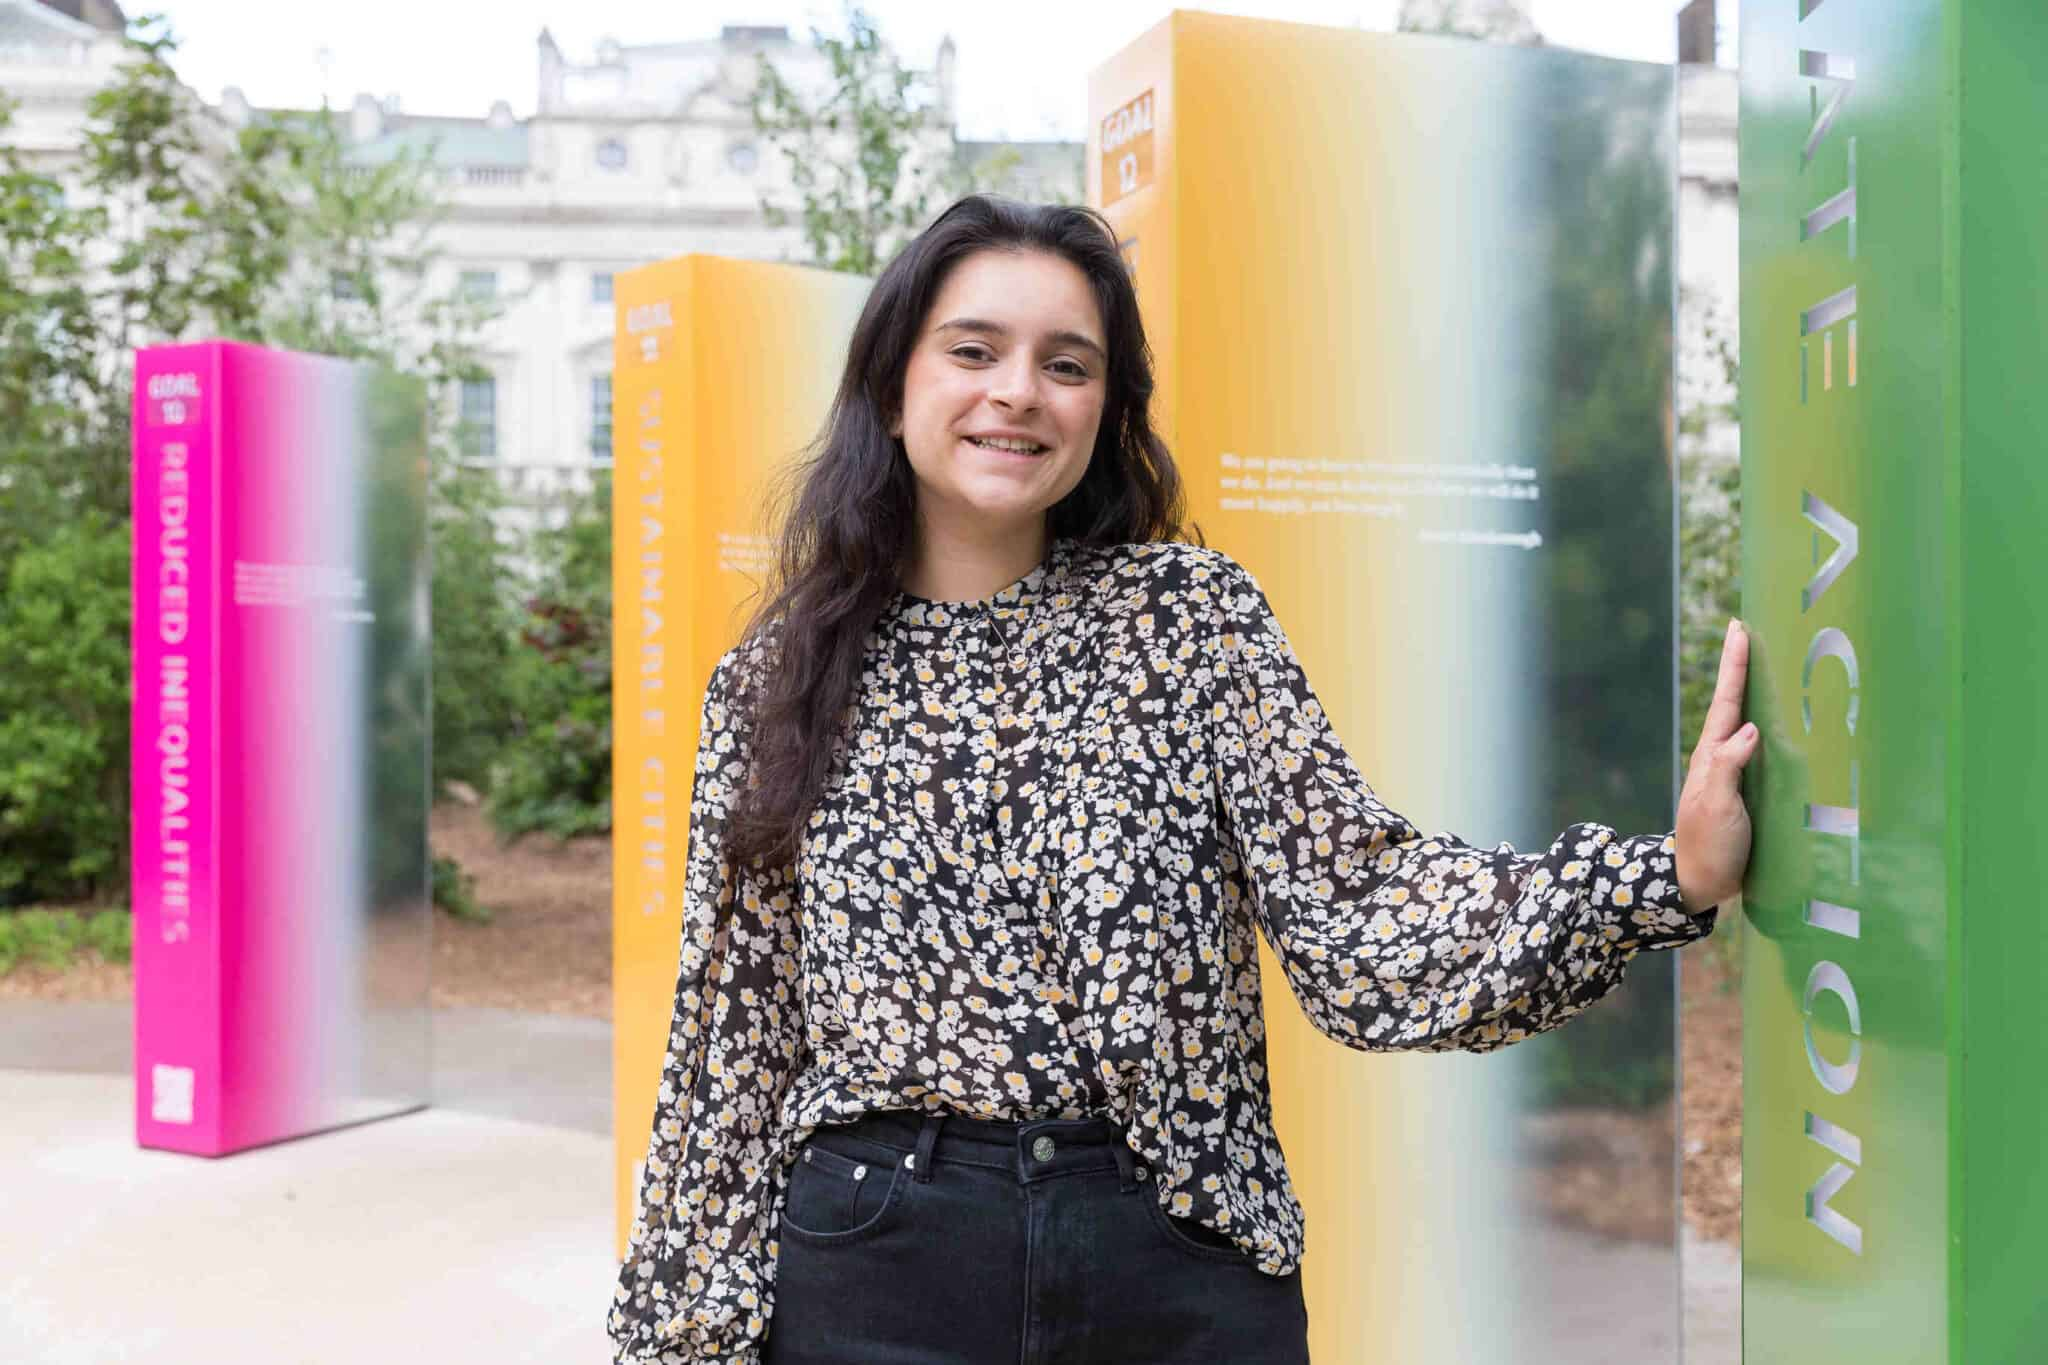 Sindhu has long black hair, and is standing in a cricle of pillars that represent the 17 sustainable development goals. She is wearing a floral print long sleeve blouse and black jeans.